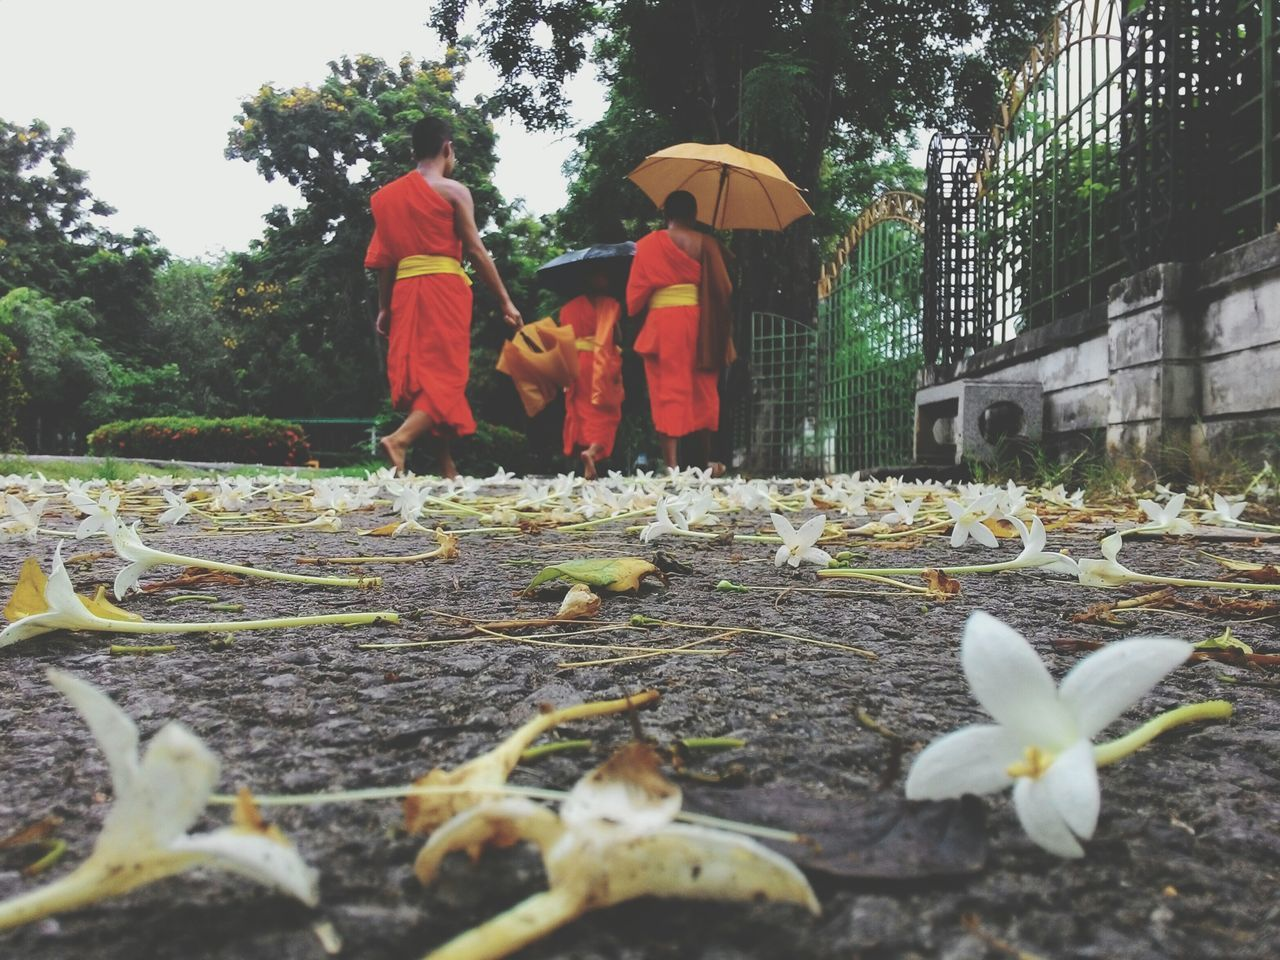 Surface Level View Of Fallen Flowers With Monks Walking On Footpath